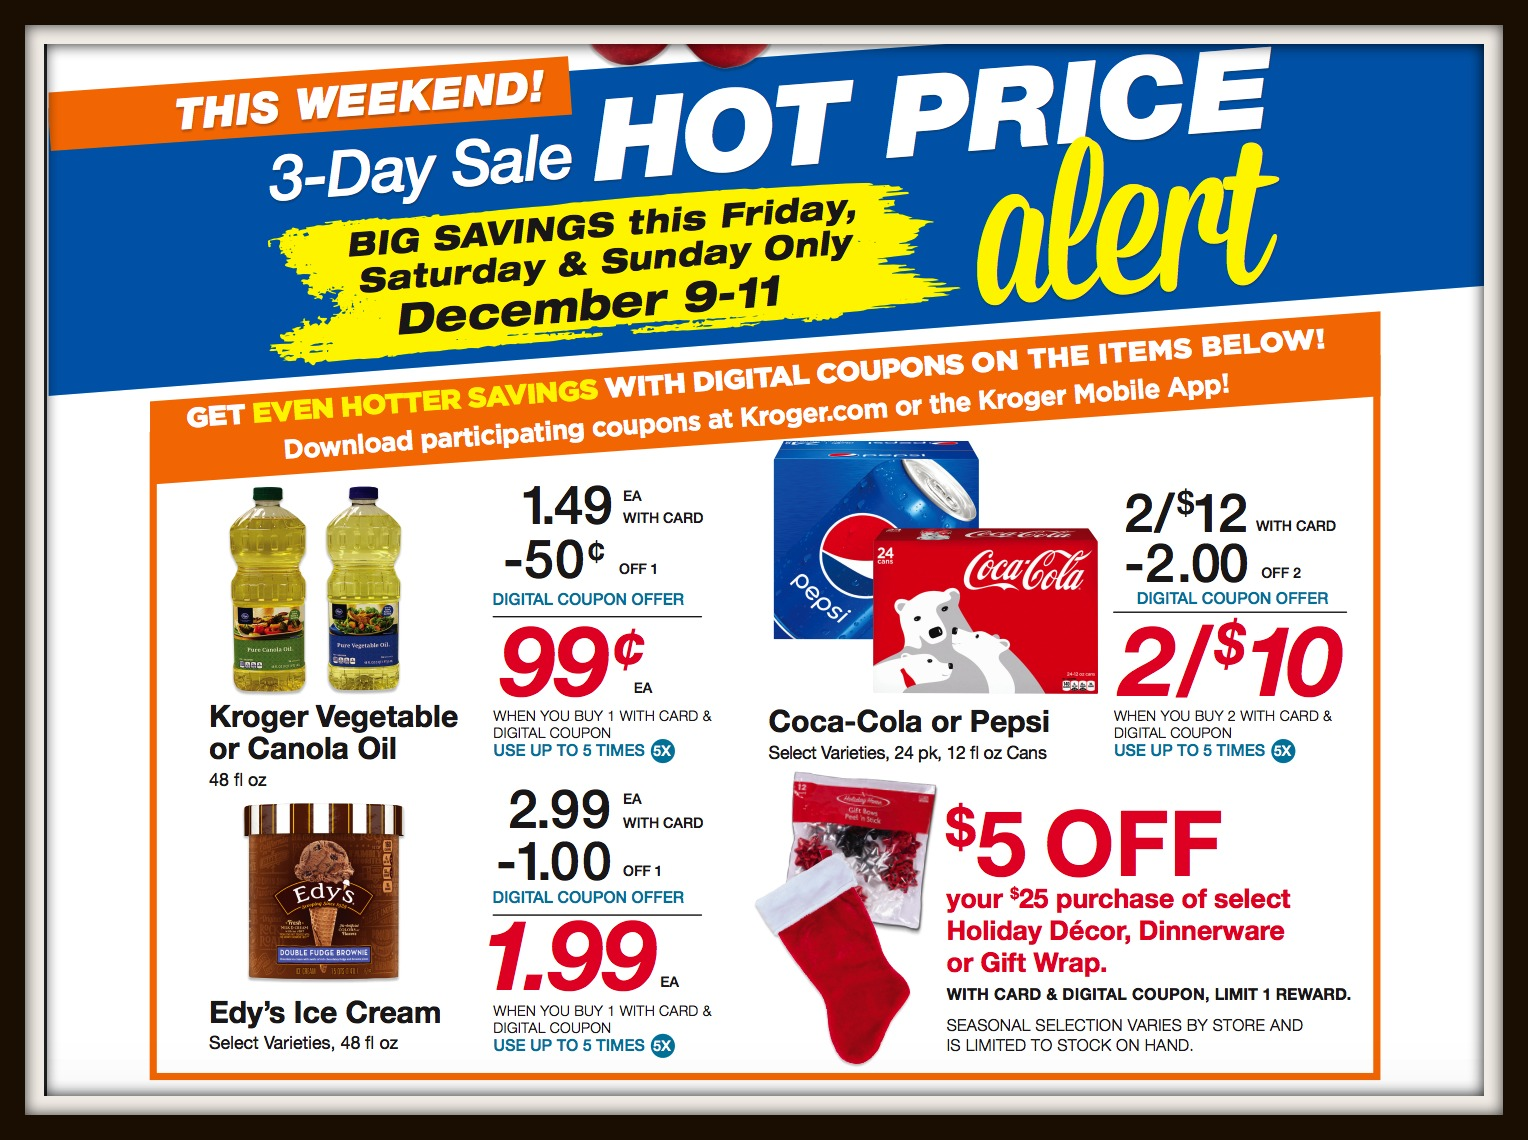 3-day-hot-price